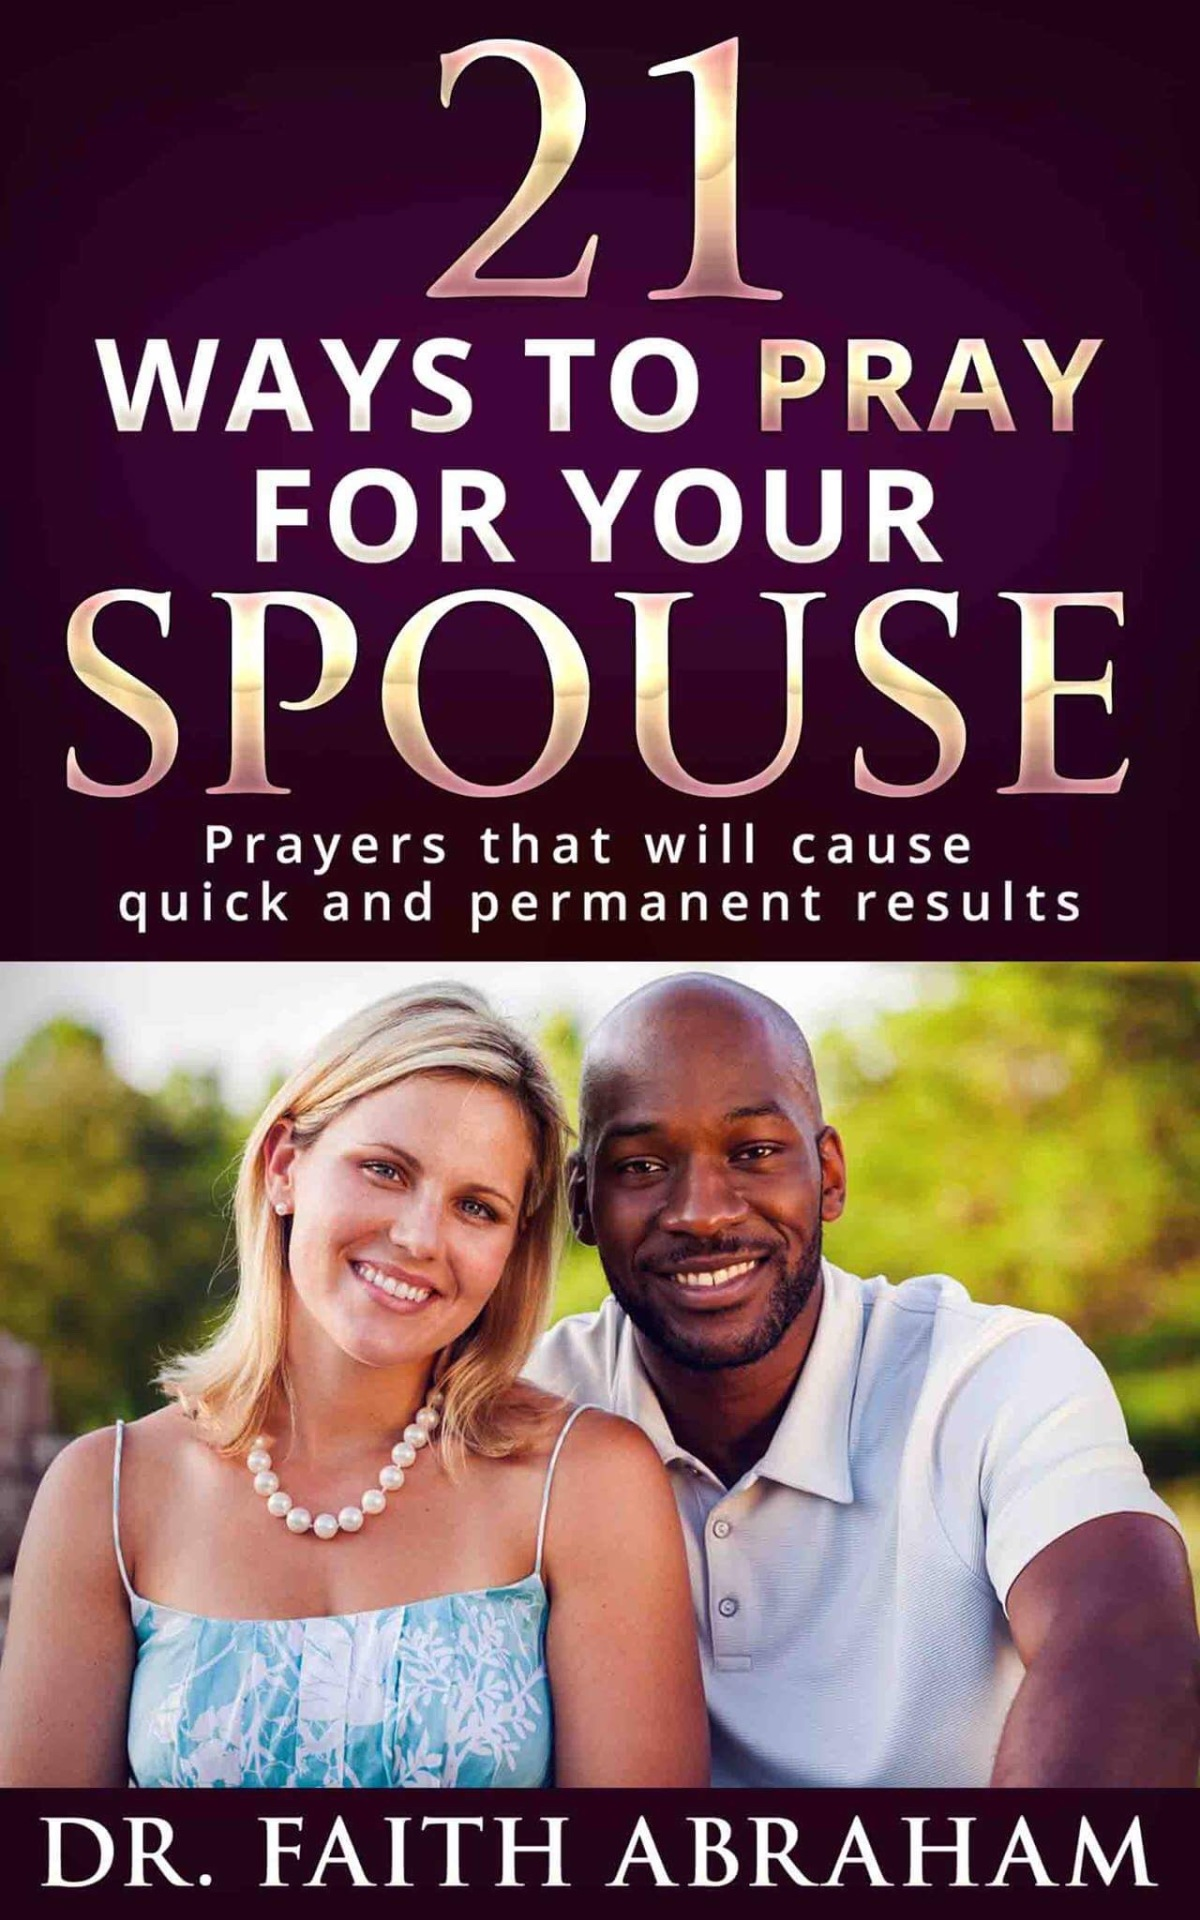 21 ways to pray for your spouse